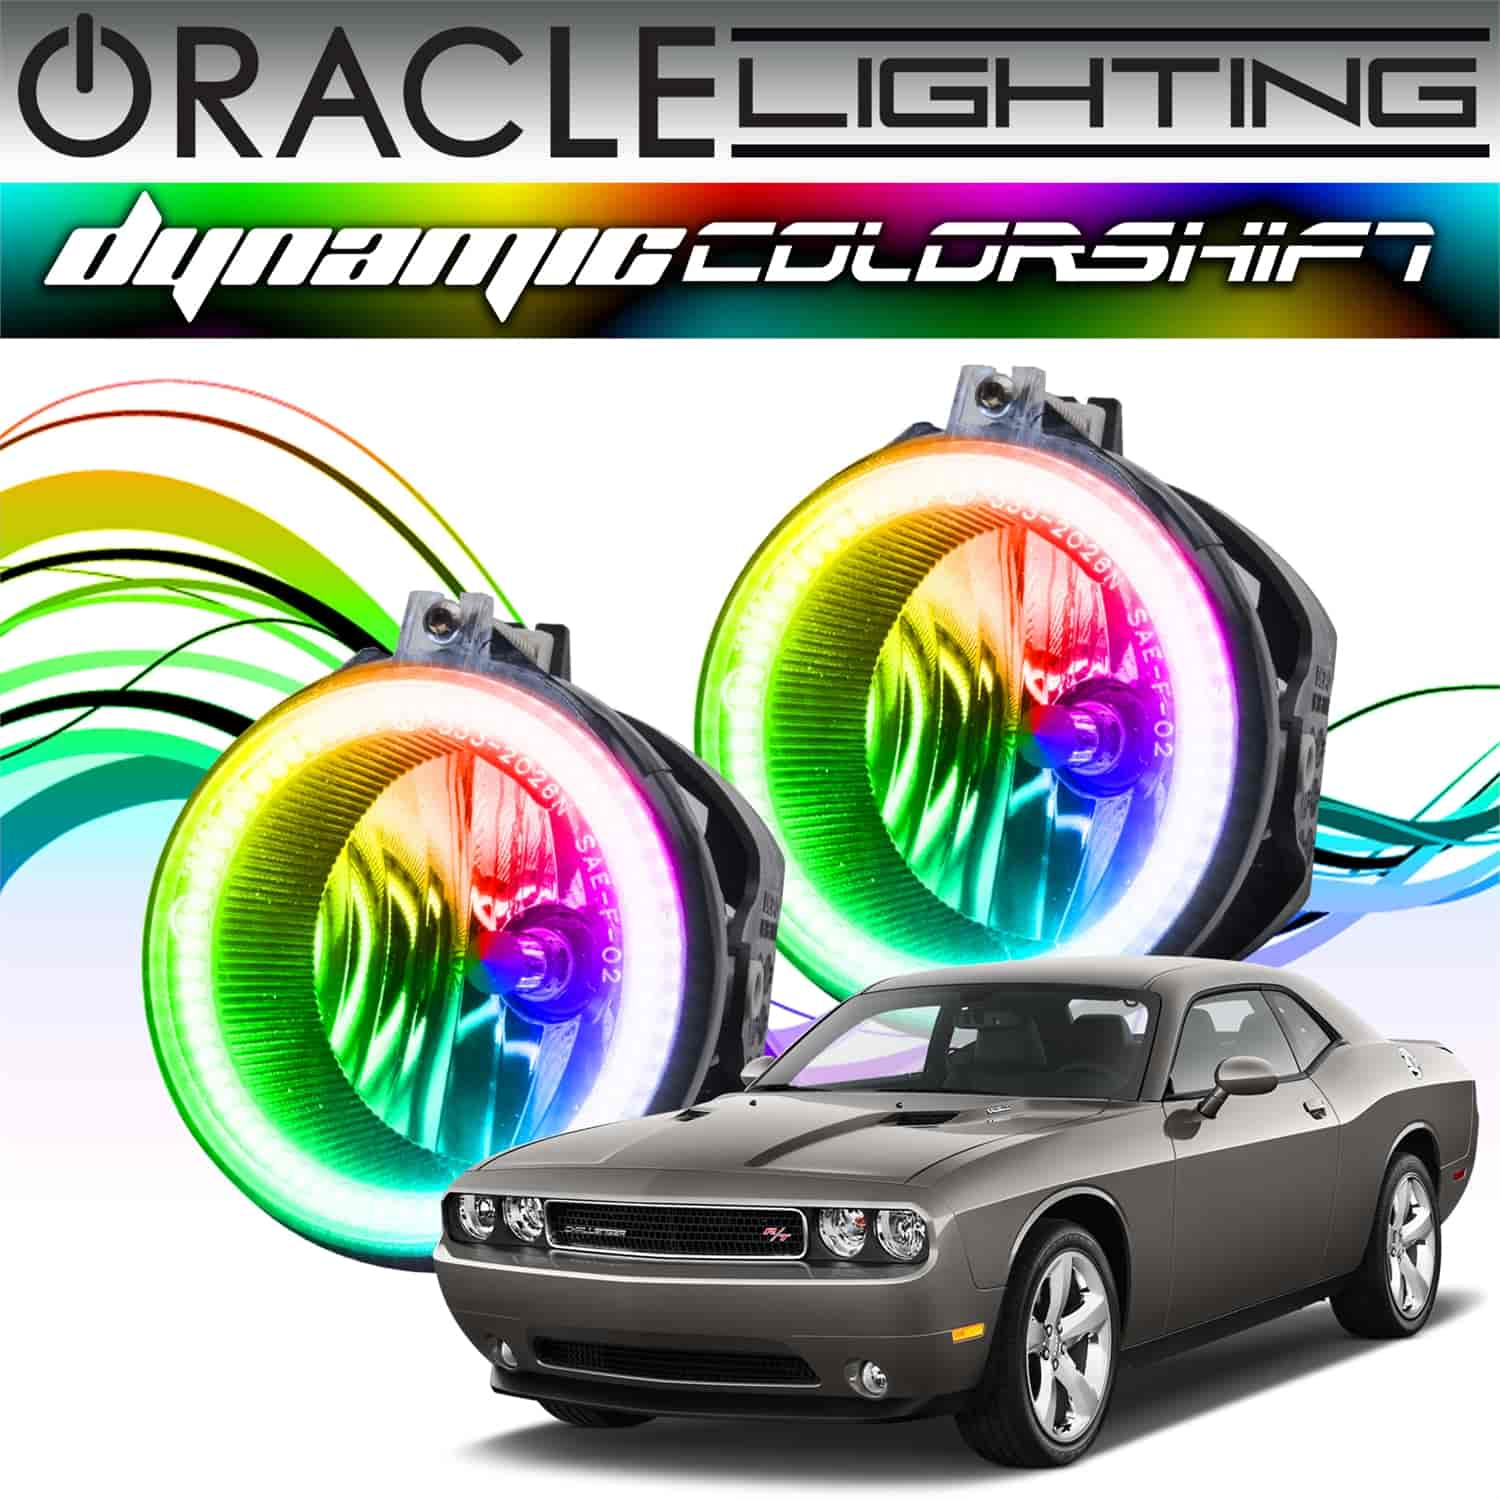 ORACLE Lighting 1166-332